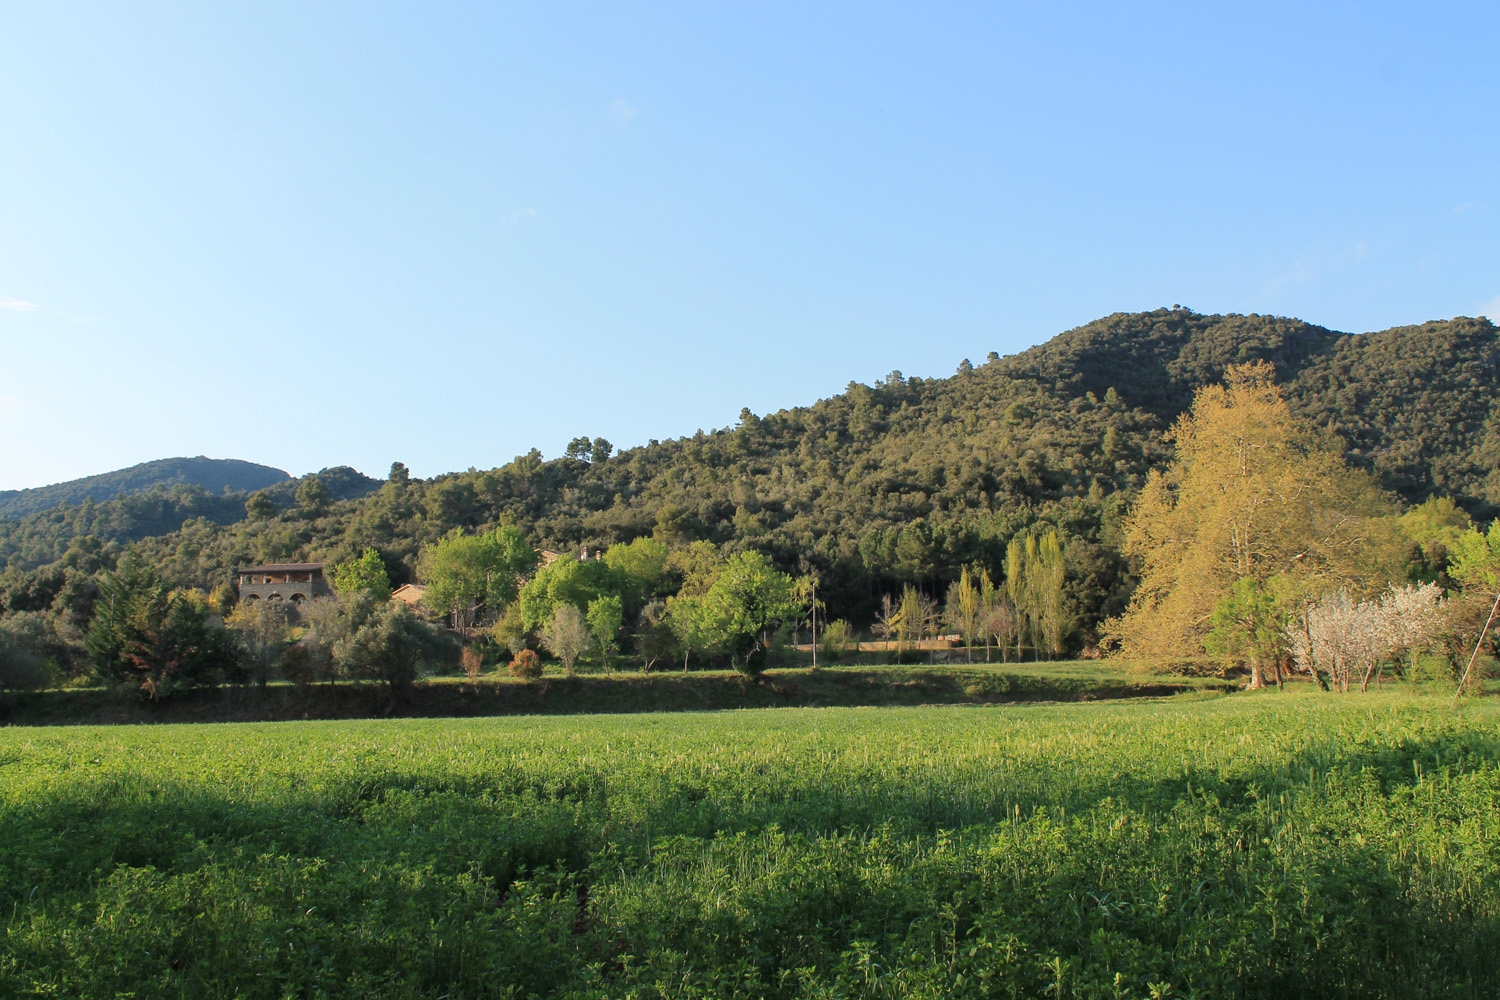 STROLLS AND OUTINGS AROUND THE VALL DEL LLÉMENA